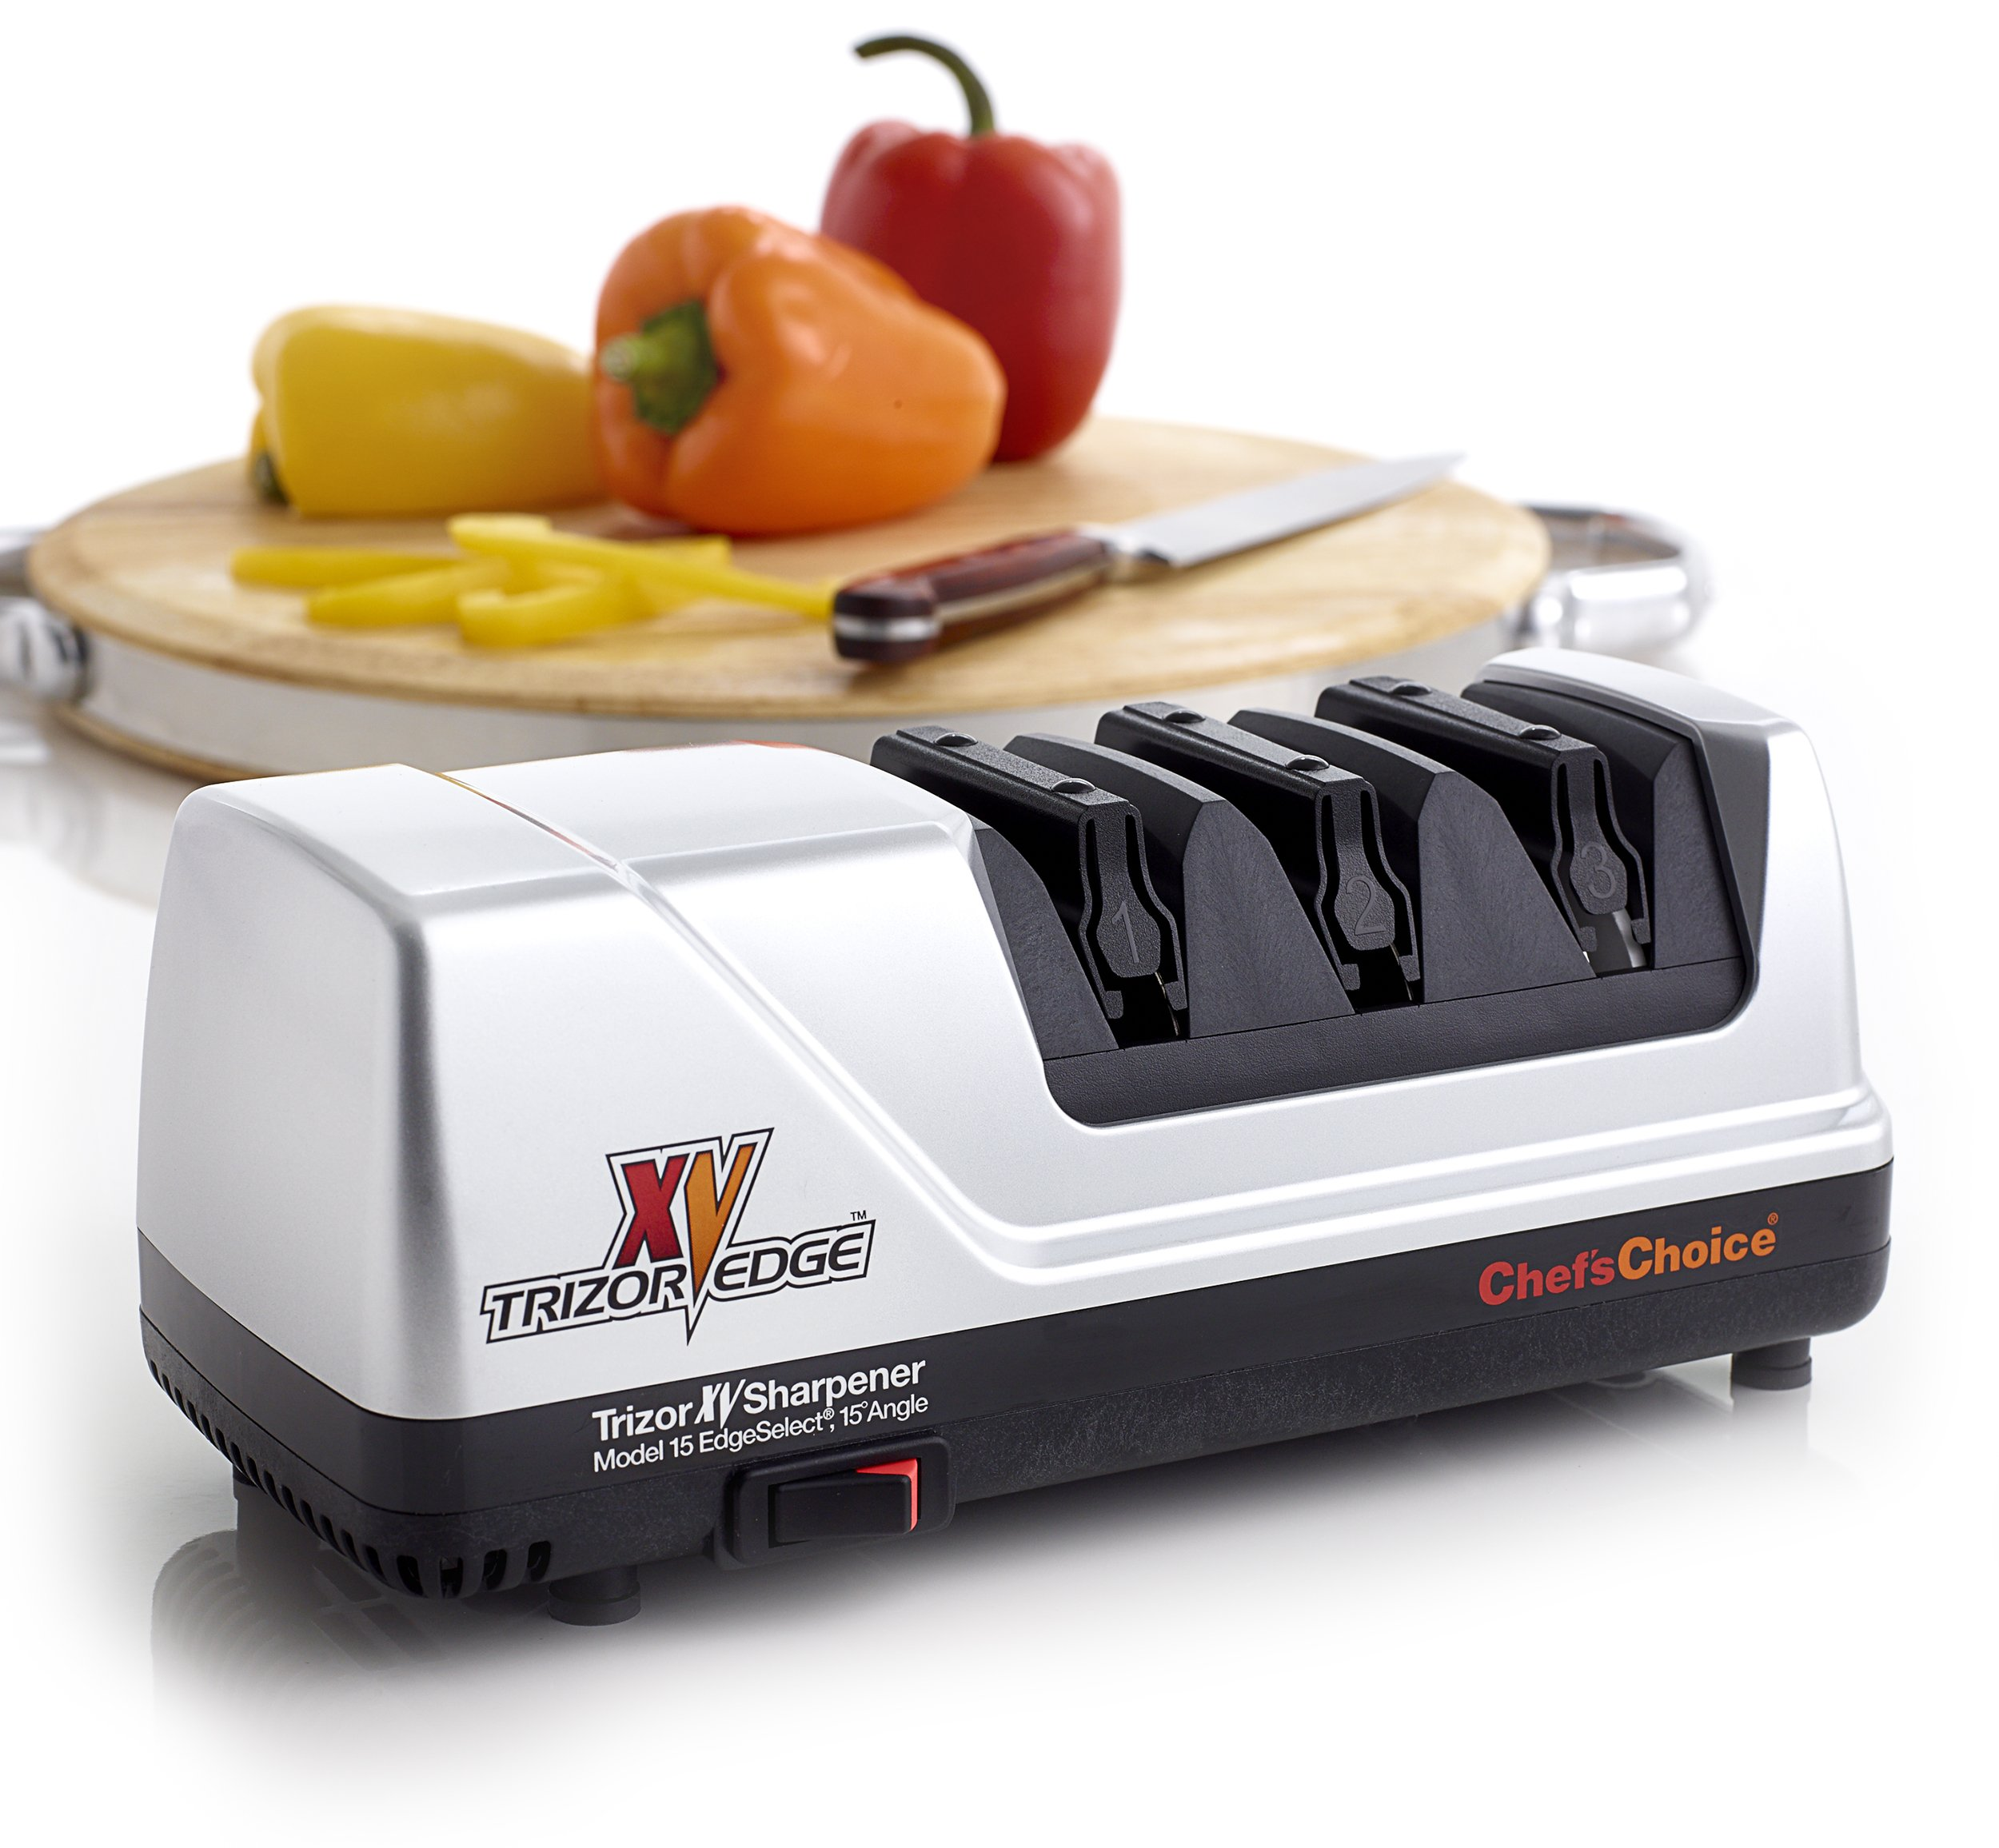 Chef's Choice 15 Trizor XV EdgeSelect Electric Knife Sharpener, Platinum by Chef'sChoice (Image #2)